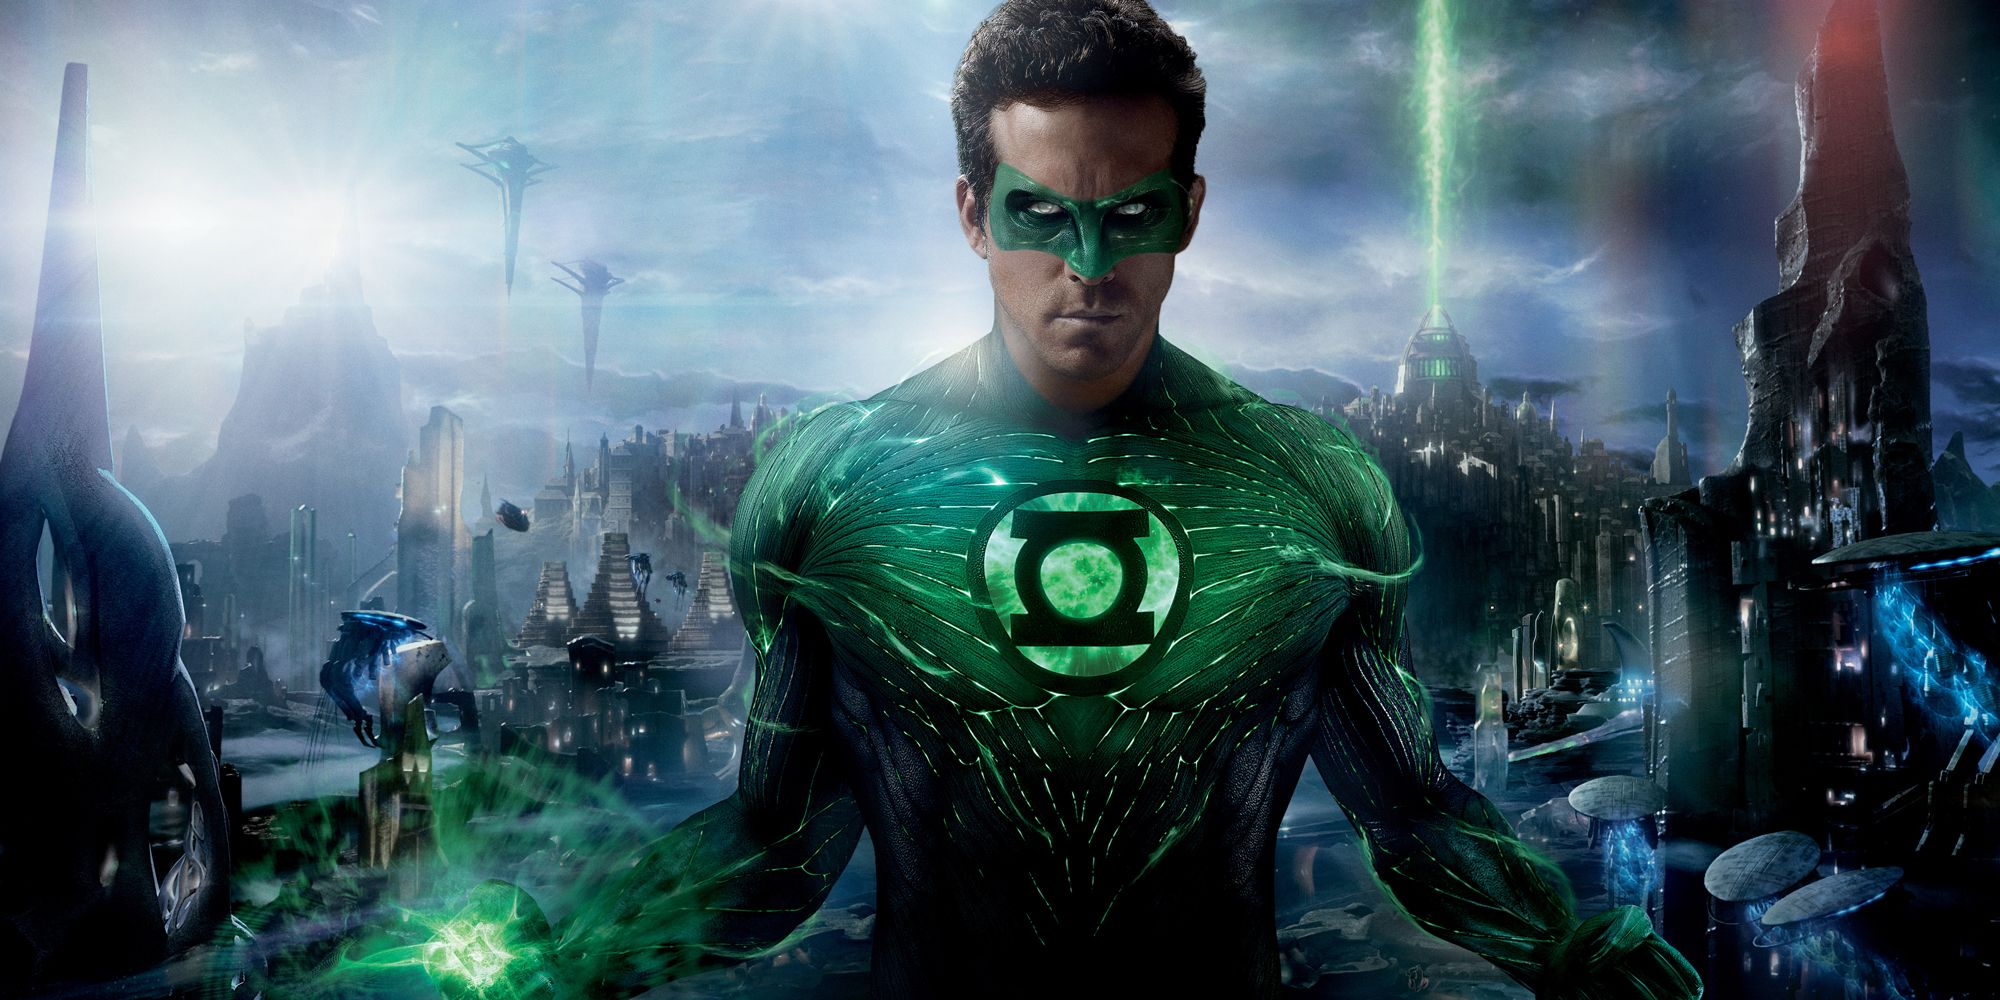 Ryan Reynolds Begged Fox To Make Deadpool Movie Before Green Lantern